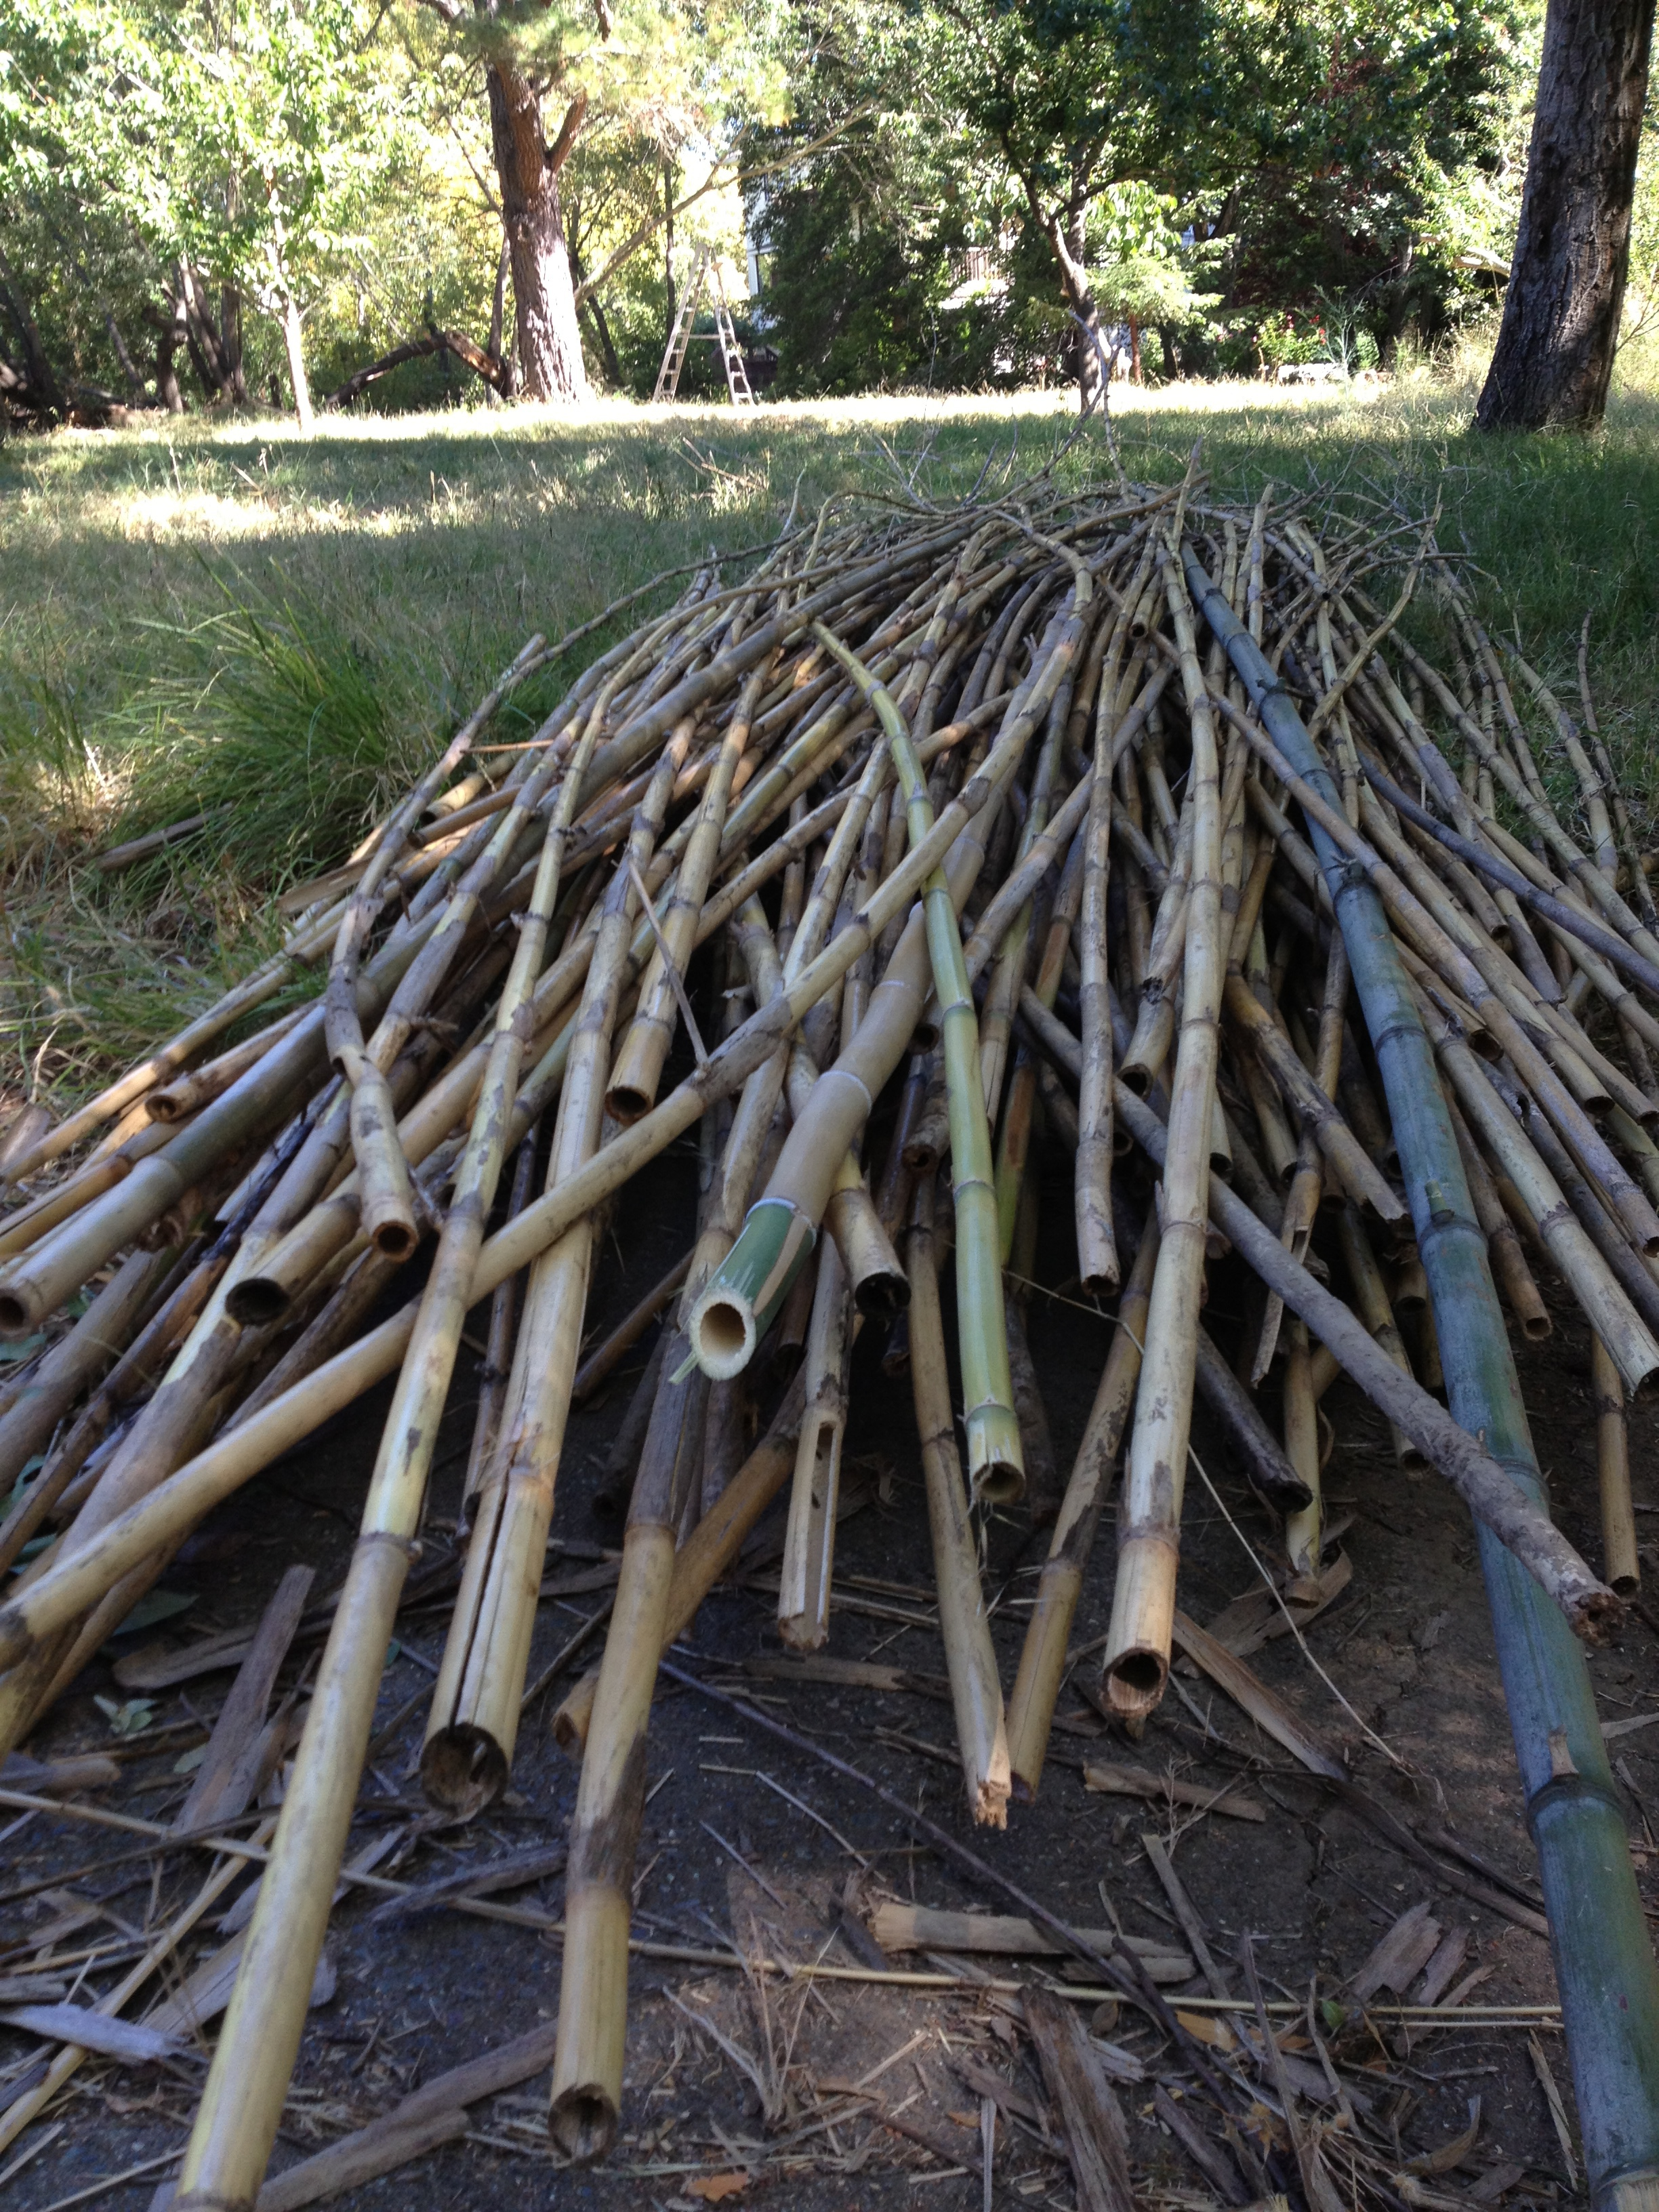 Pile of Arundo grass and bamboo